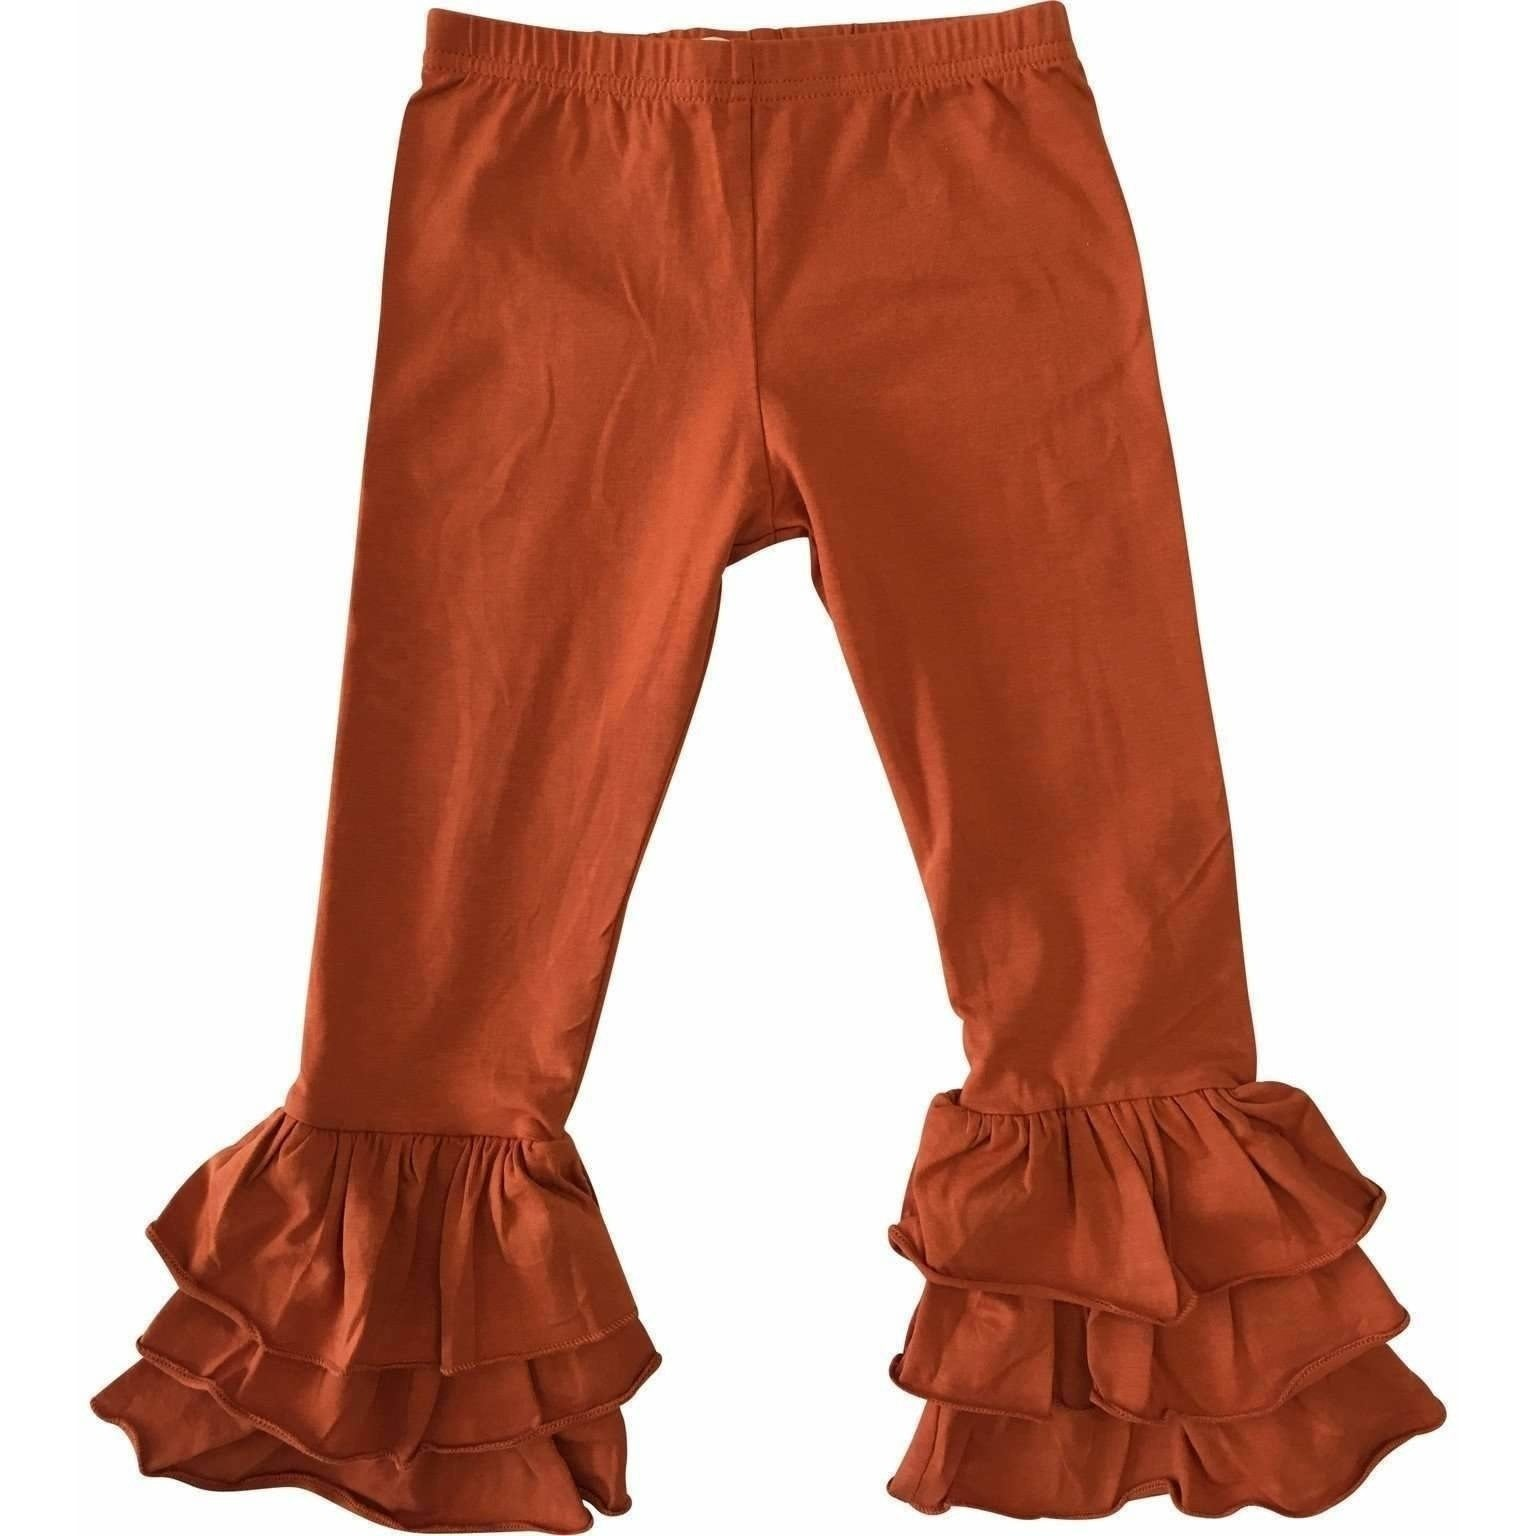 Adorable Essentials, Girls Triple Ruffle Pants,Bottoms,Adorable Essentials, LLC